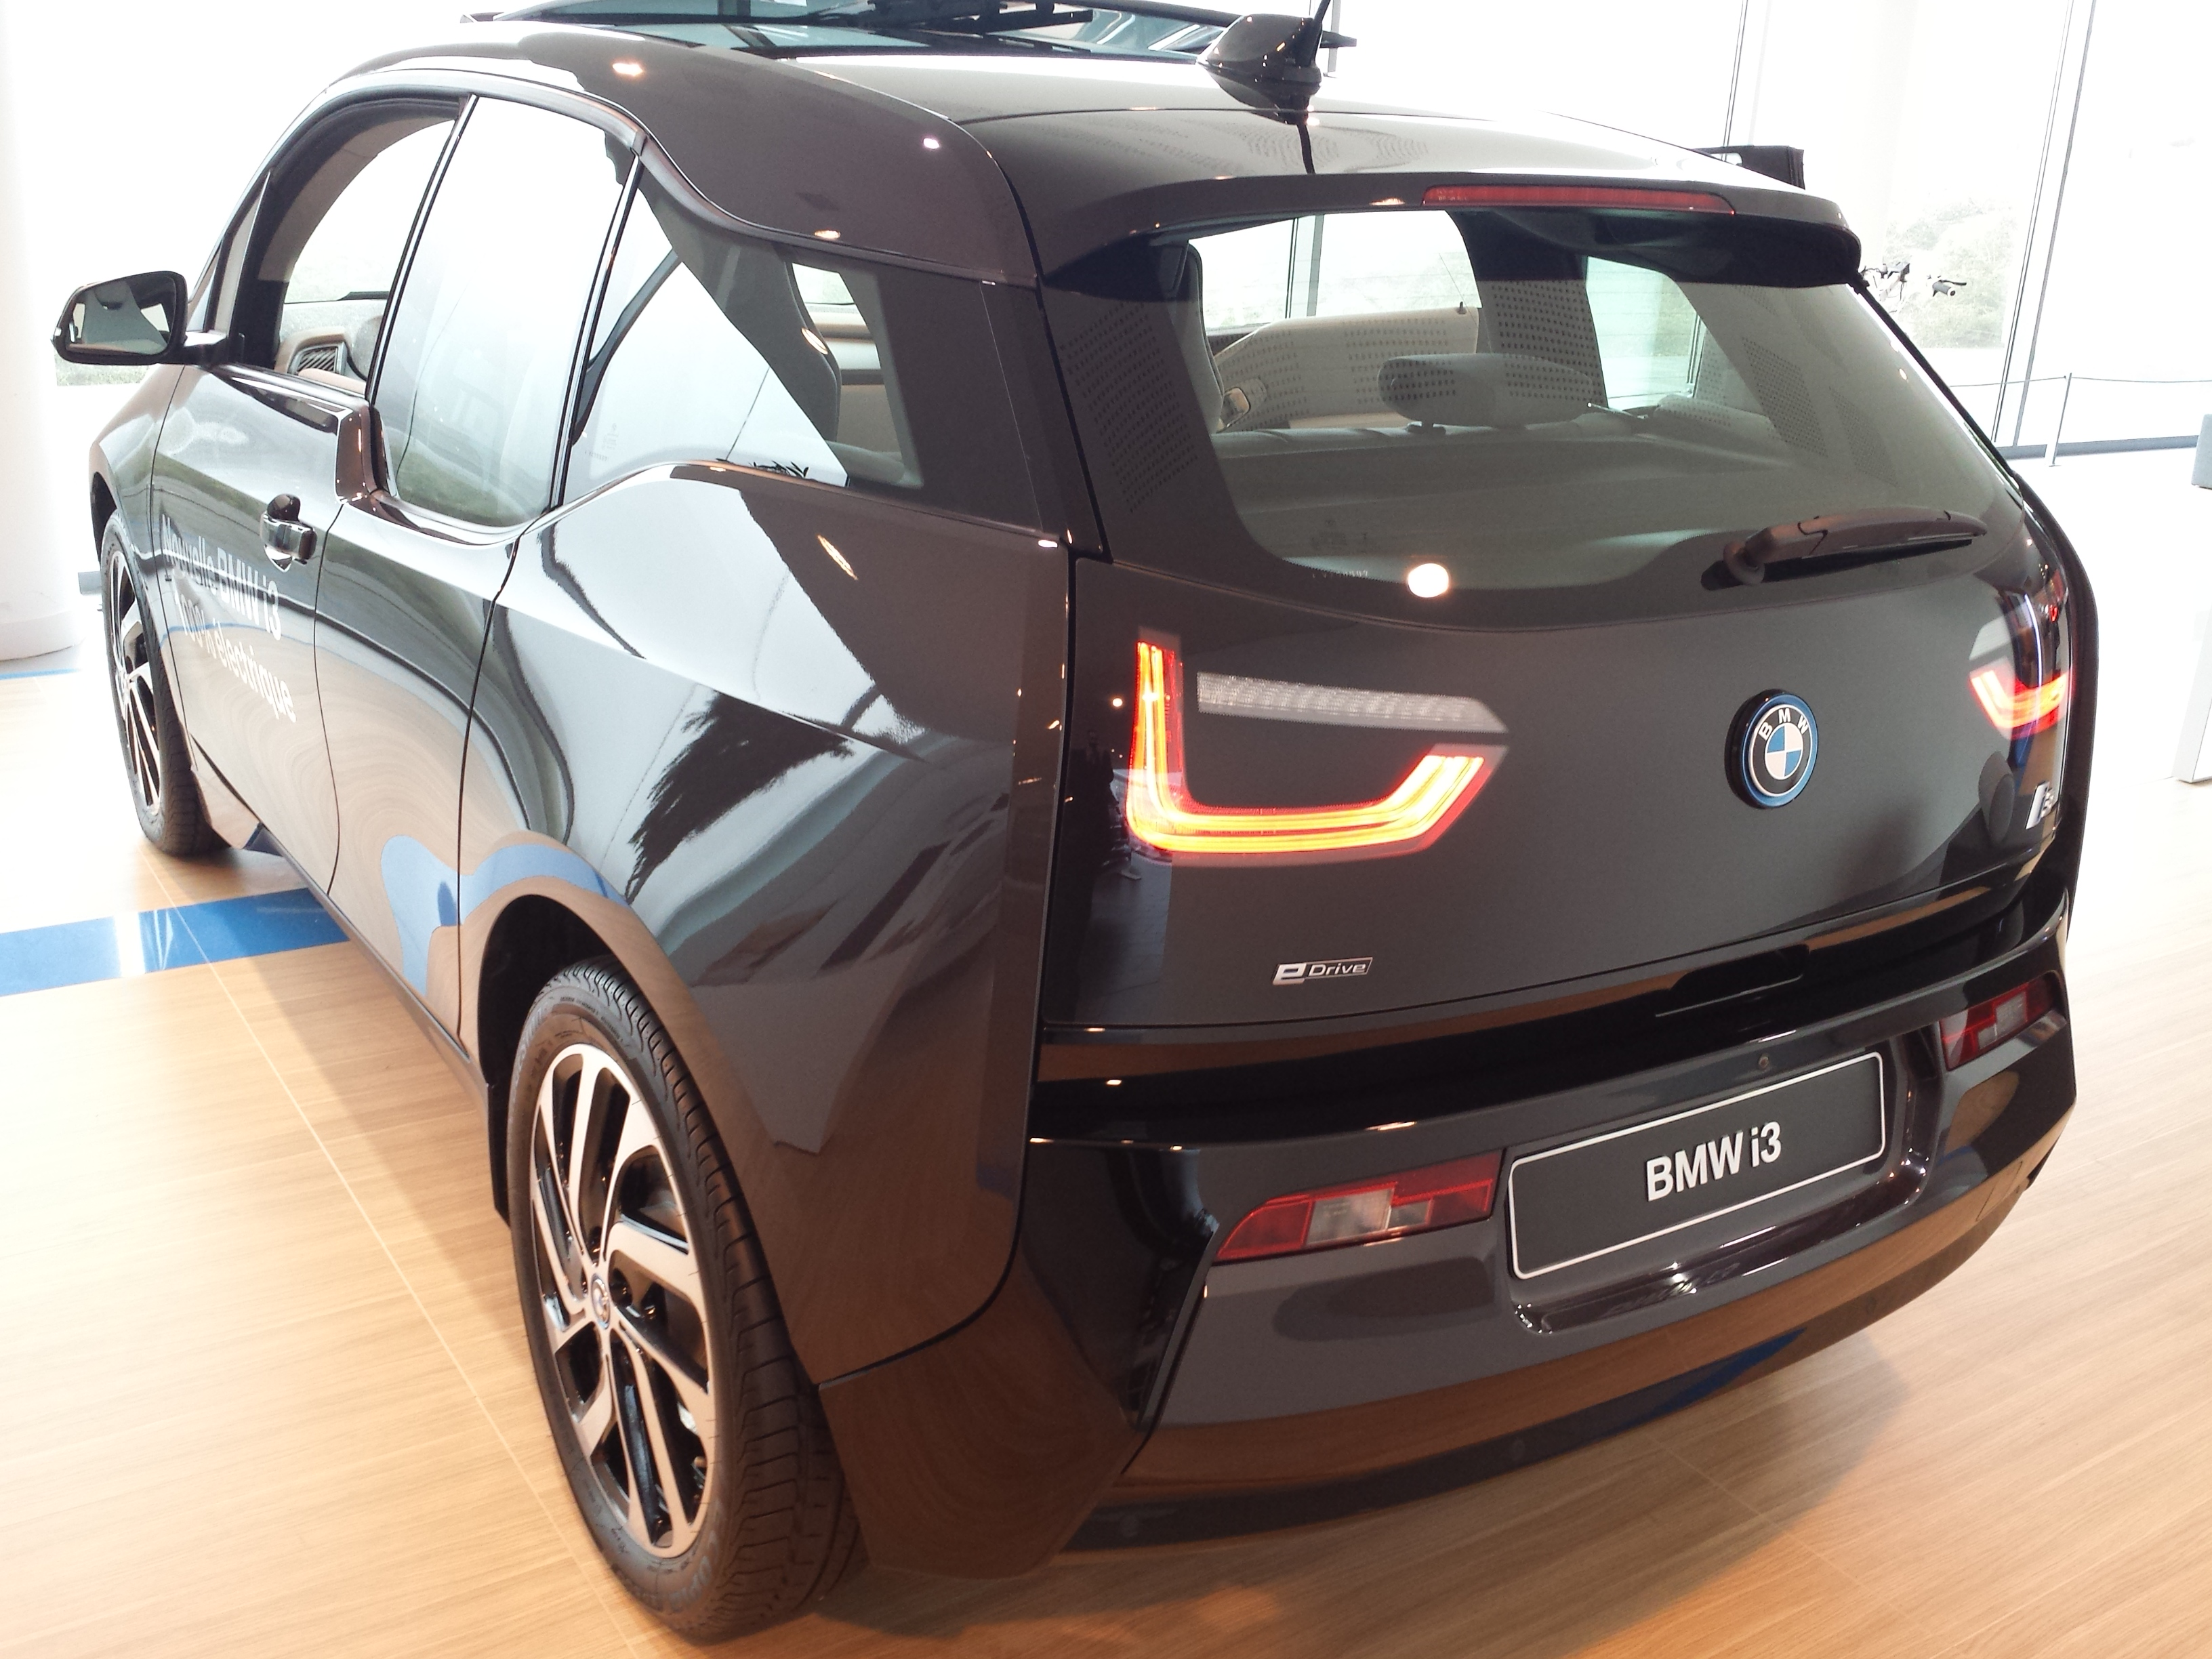 bmw i3 essai routier pisode 2 essais. Black Bedroom Furniture Sets. Home Design Ideas